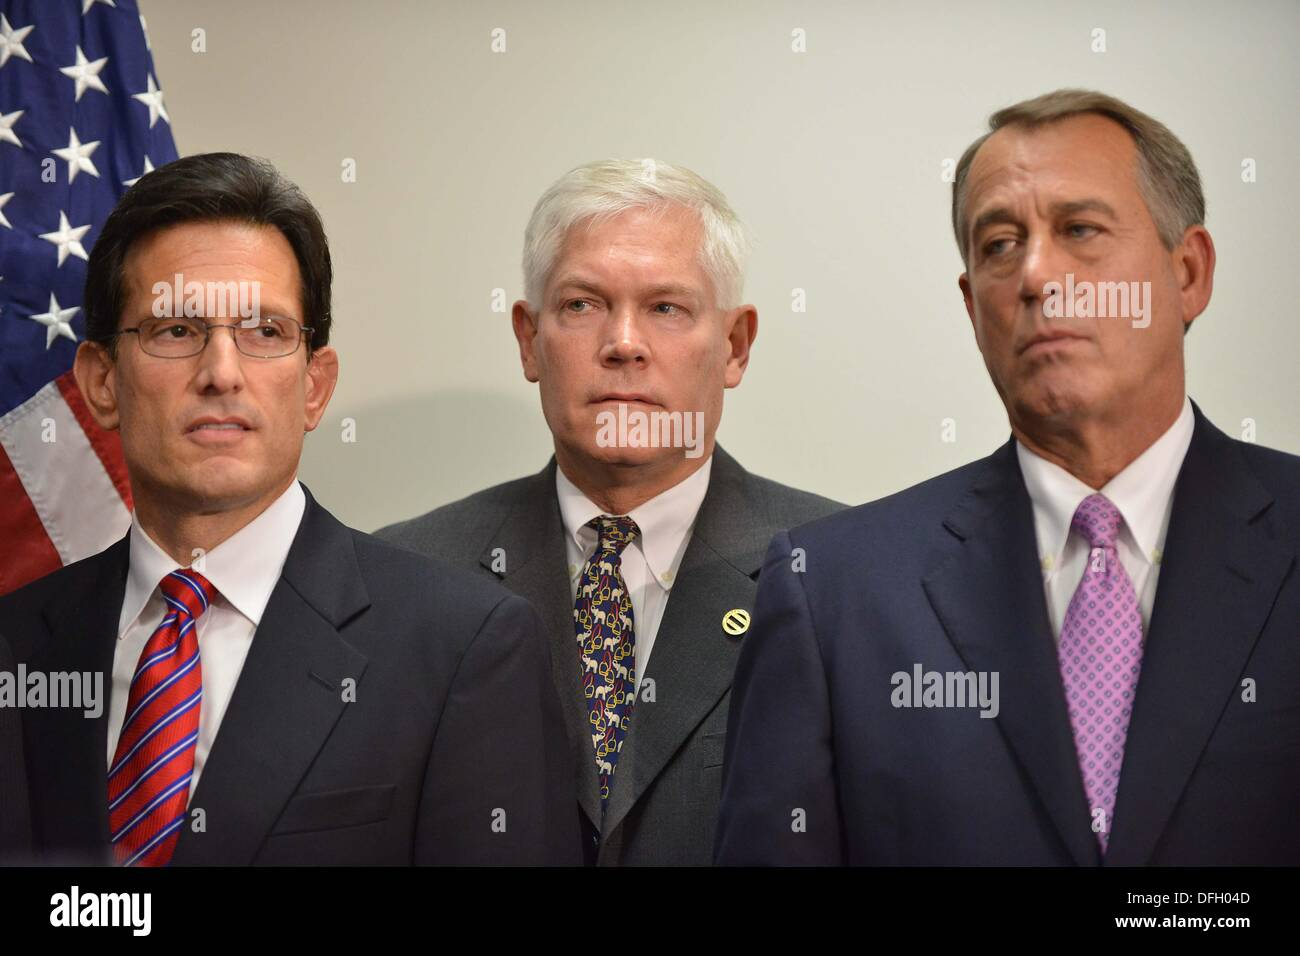 Washington, DC, USA. 4th Oct, 2013. Republican House members Eric Cantor, Virginia, Pete Sessions, Texas, and Speaker John Boehner, Ohio, listen to other party leaders speak on the government shutdown and looming debt ceiling crisis. Credit:  Jay Mallin/ZUMAPRESS.com/Alamy Live News - Stock Image